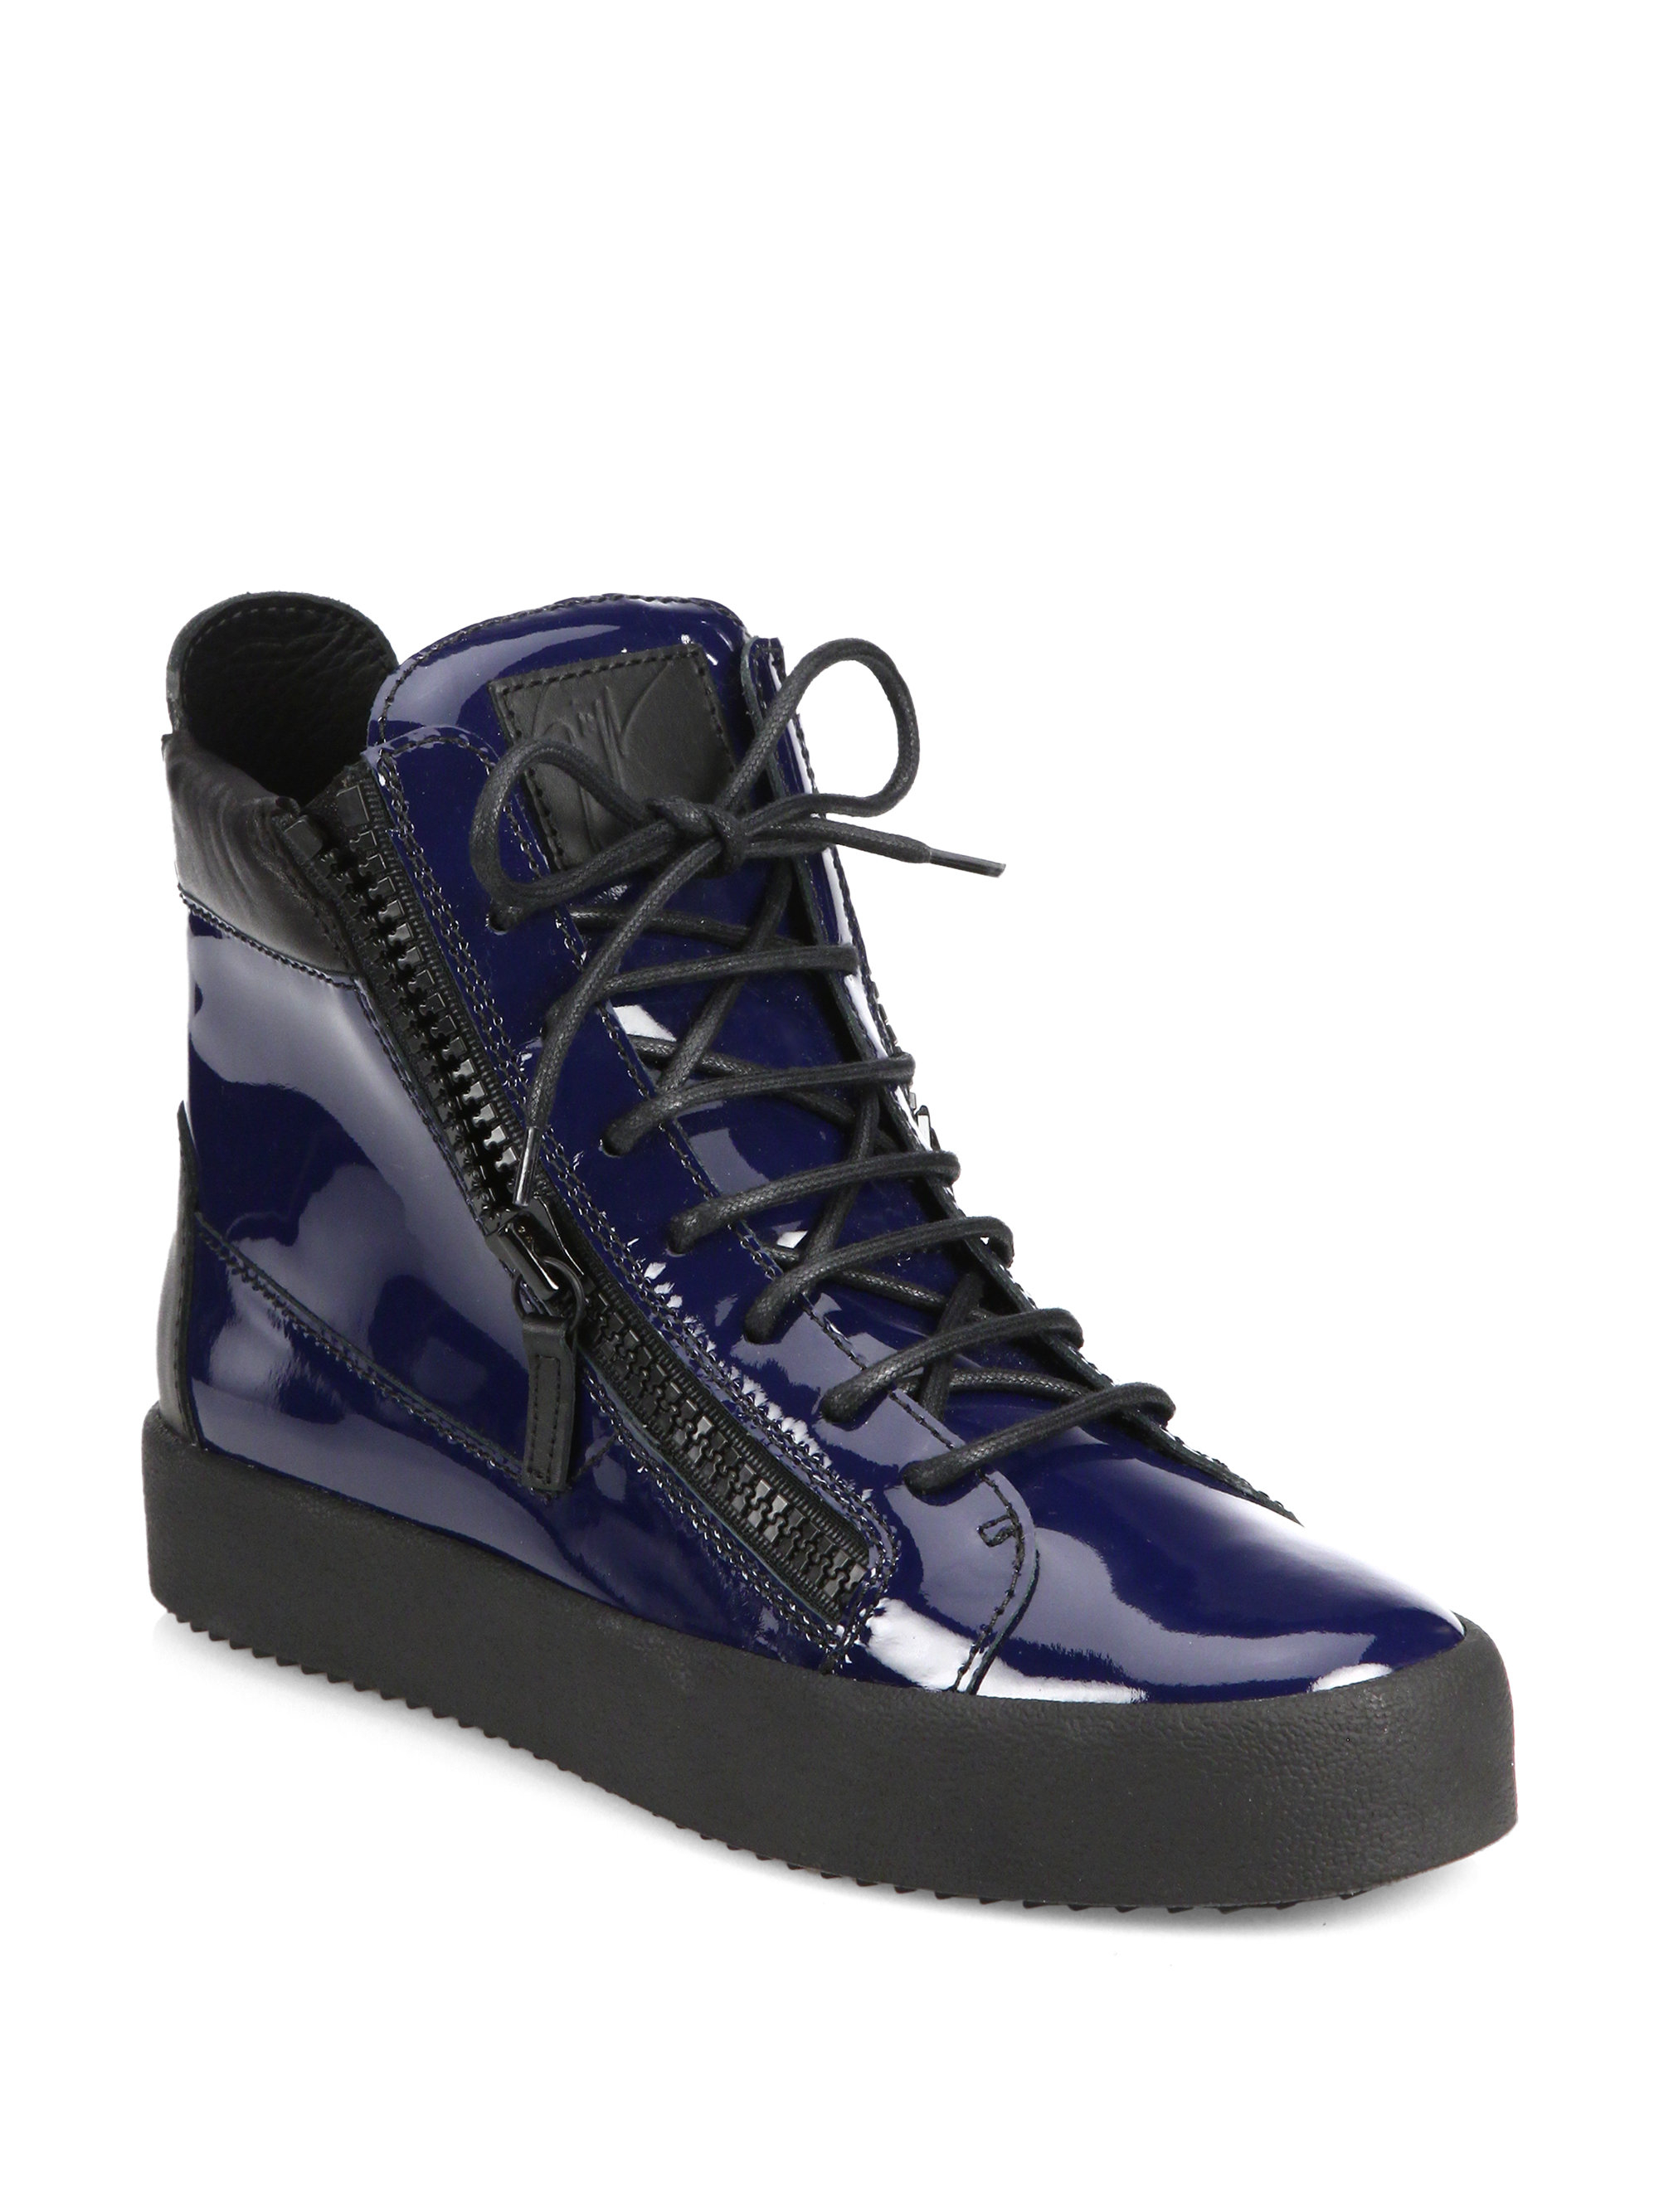 giuseppe zanotti patent double zip high top sneakers in blue lyst. Black Bedroom Furniture Sets. Home Design Ideas